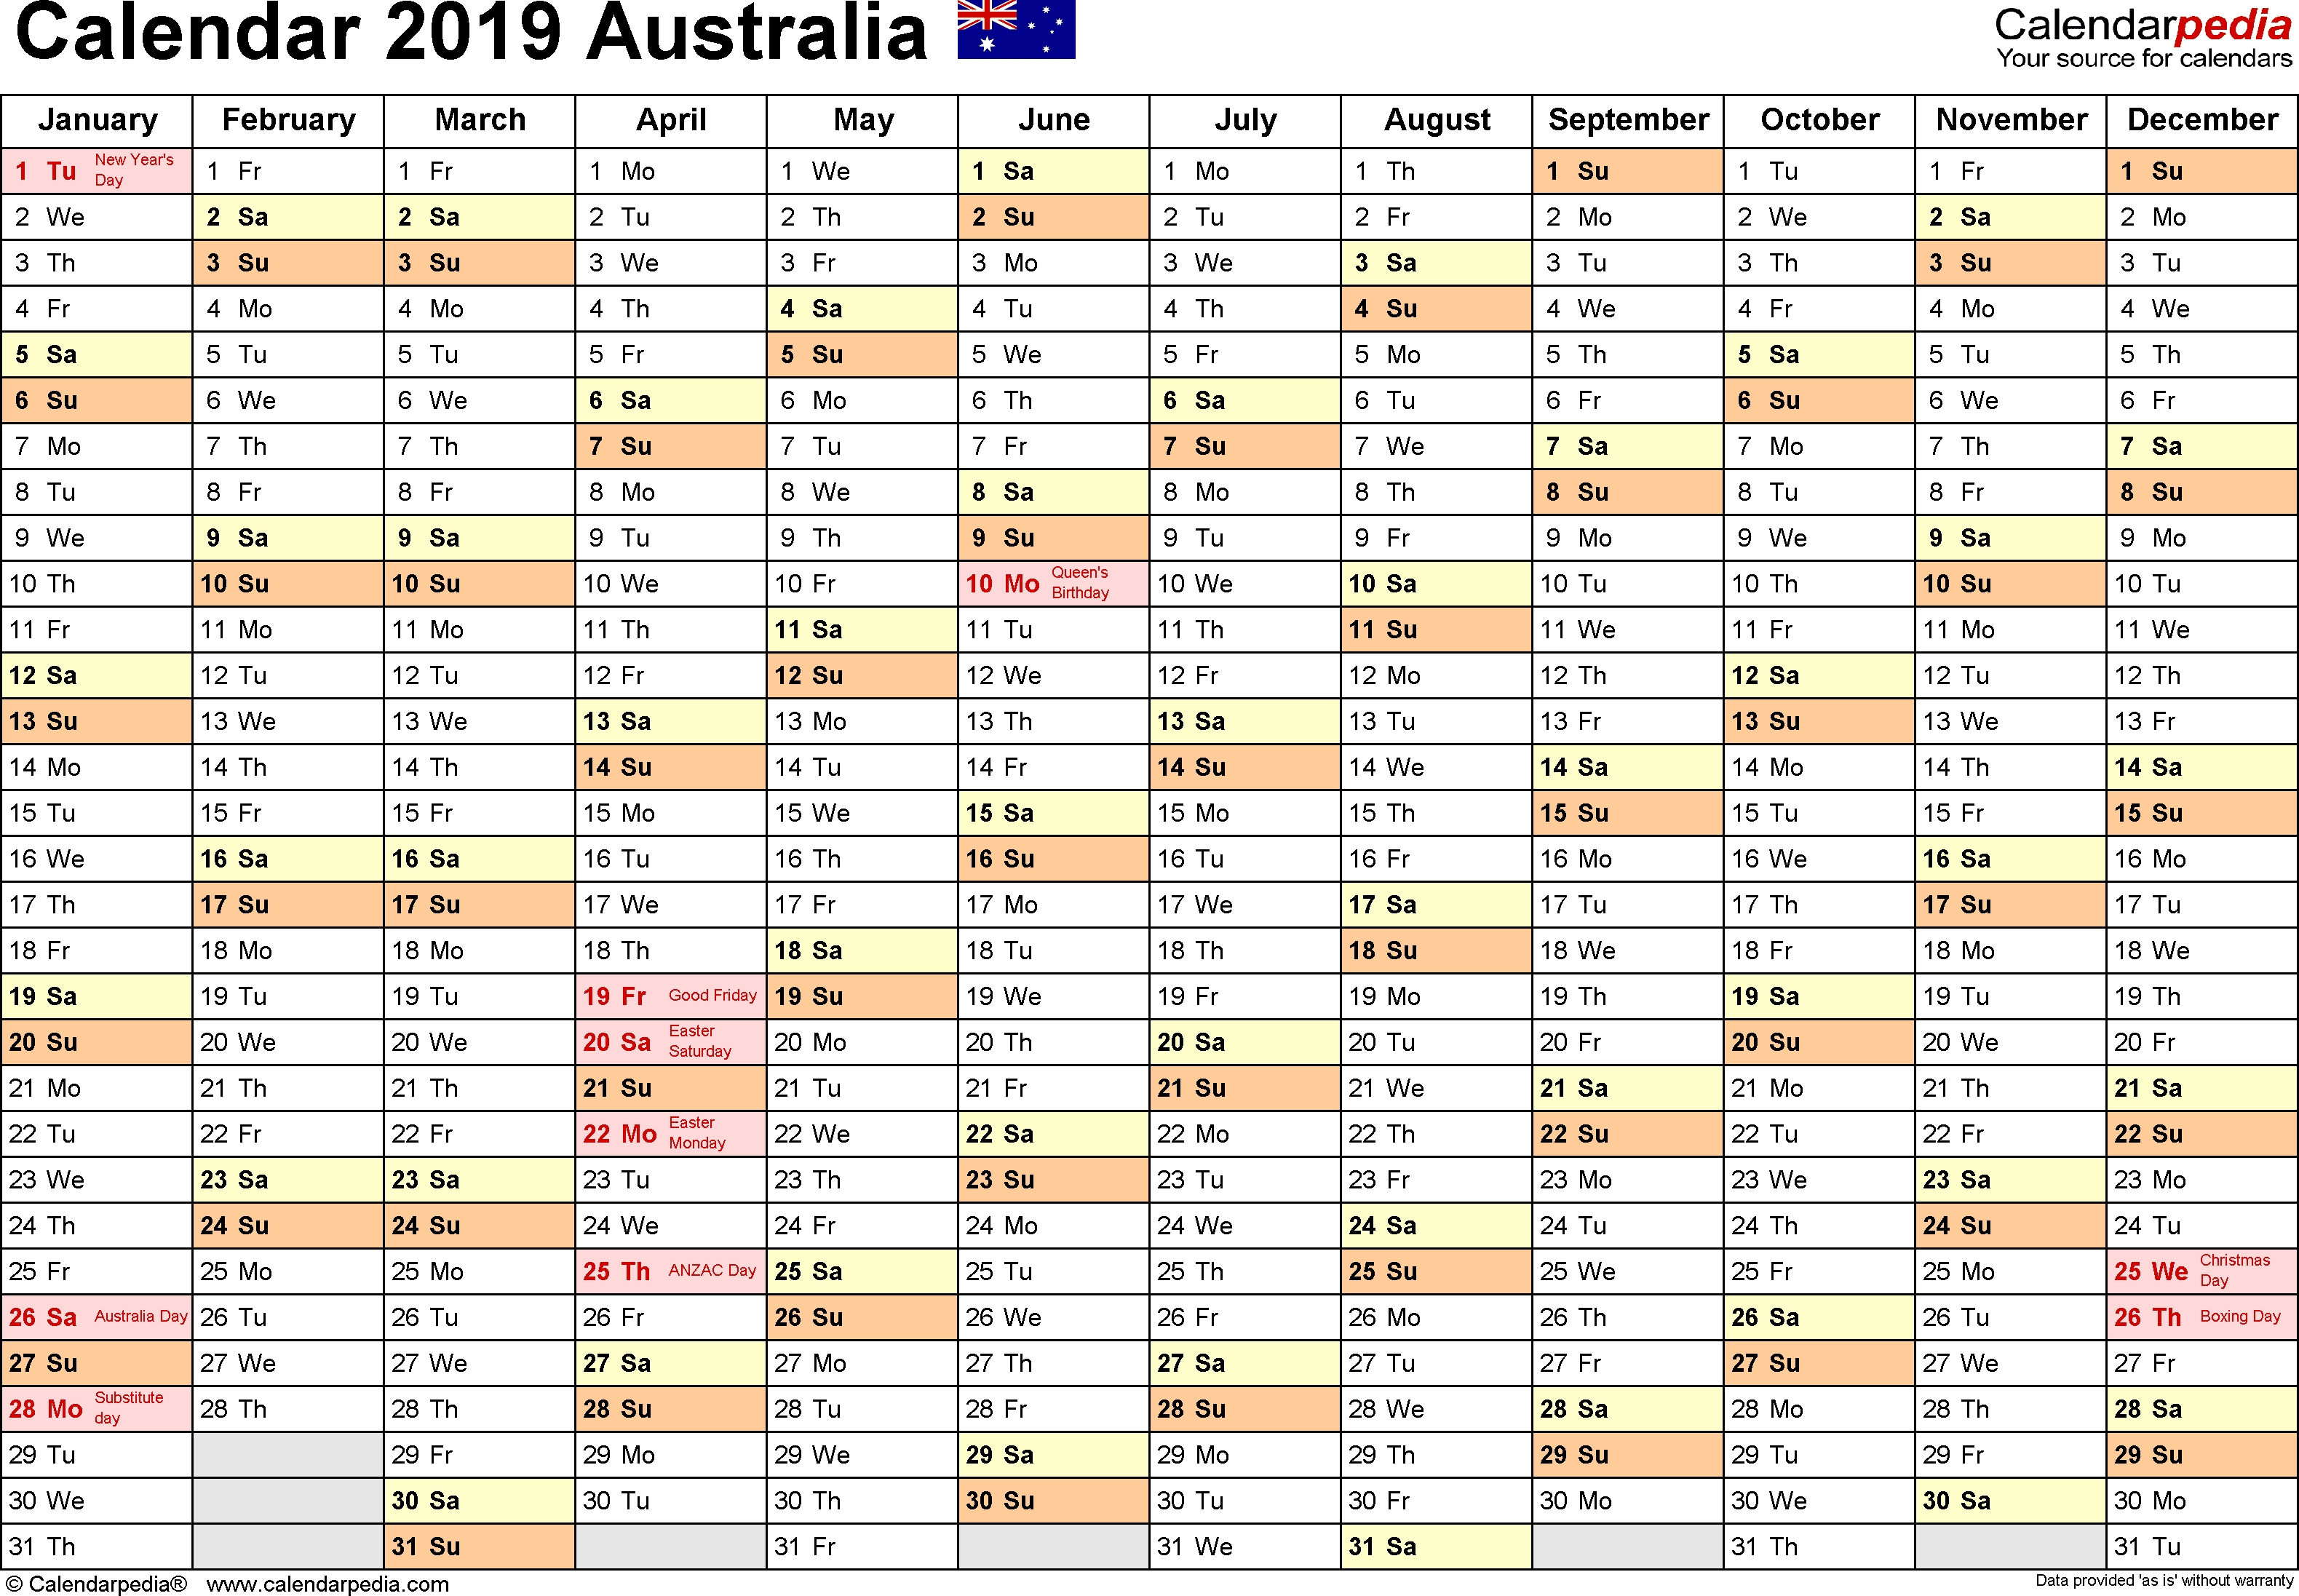 Australia Calendar 2019 - Free Printable Pdf Templates inside Week By Week Mowing Calendar Templates